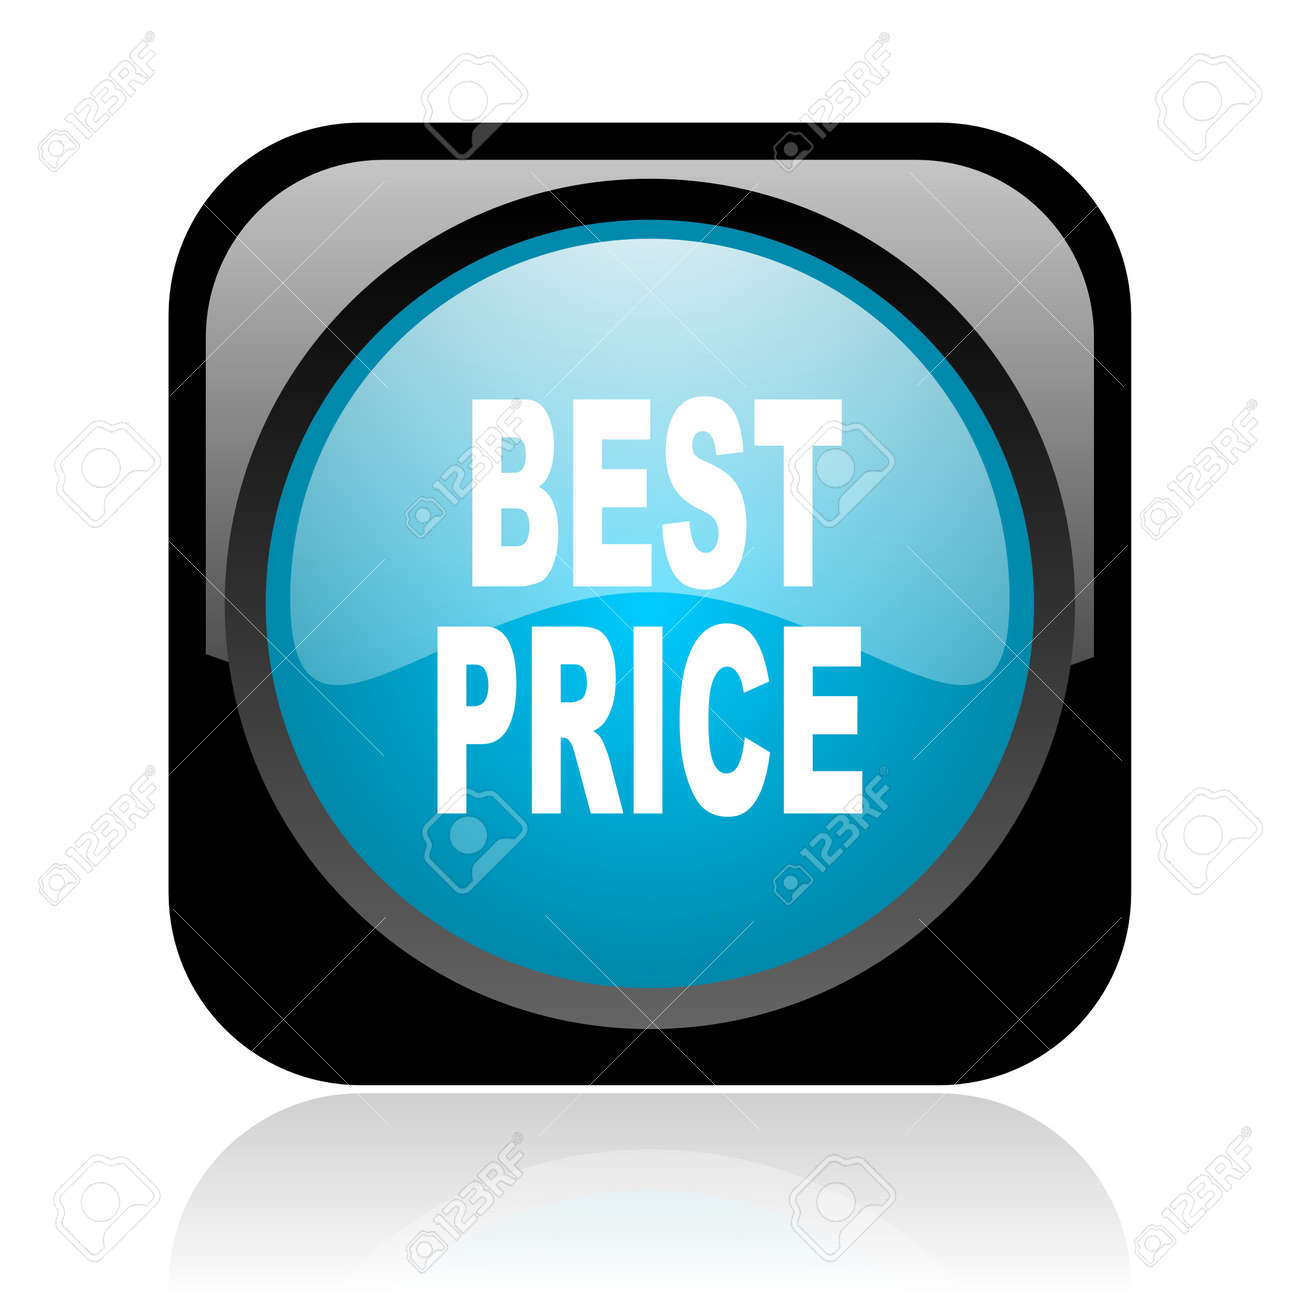 best price black and blue square web glossy icon Stock Photo - 18917780